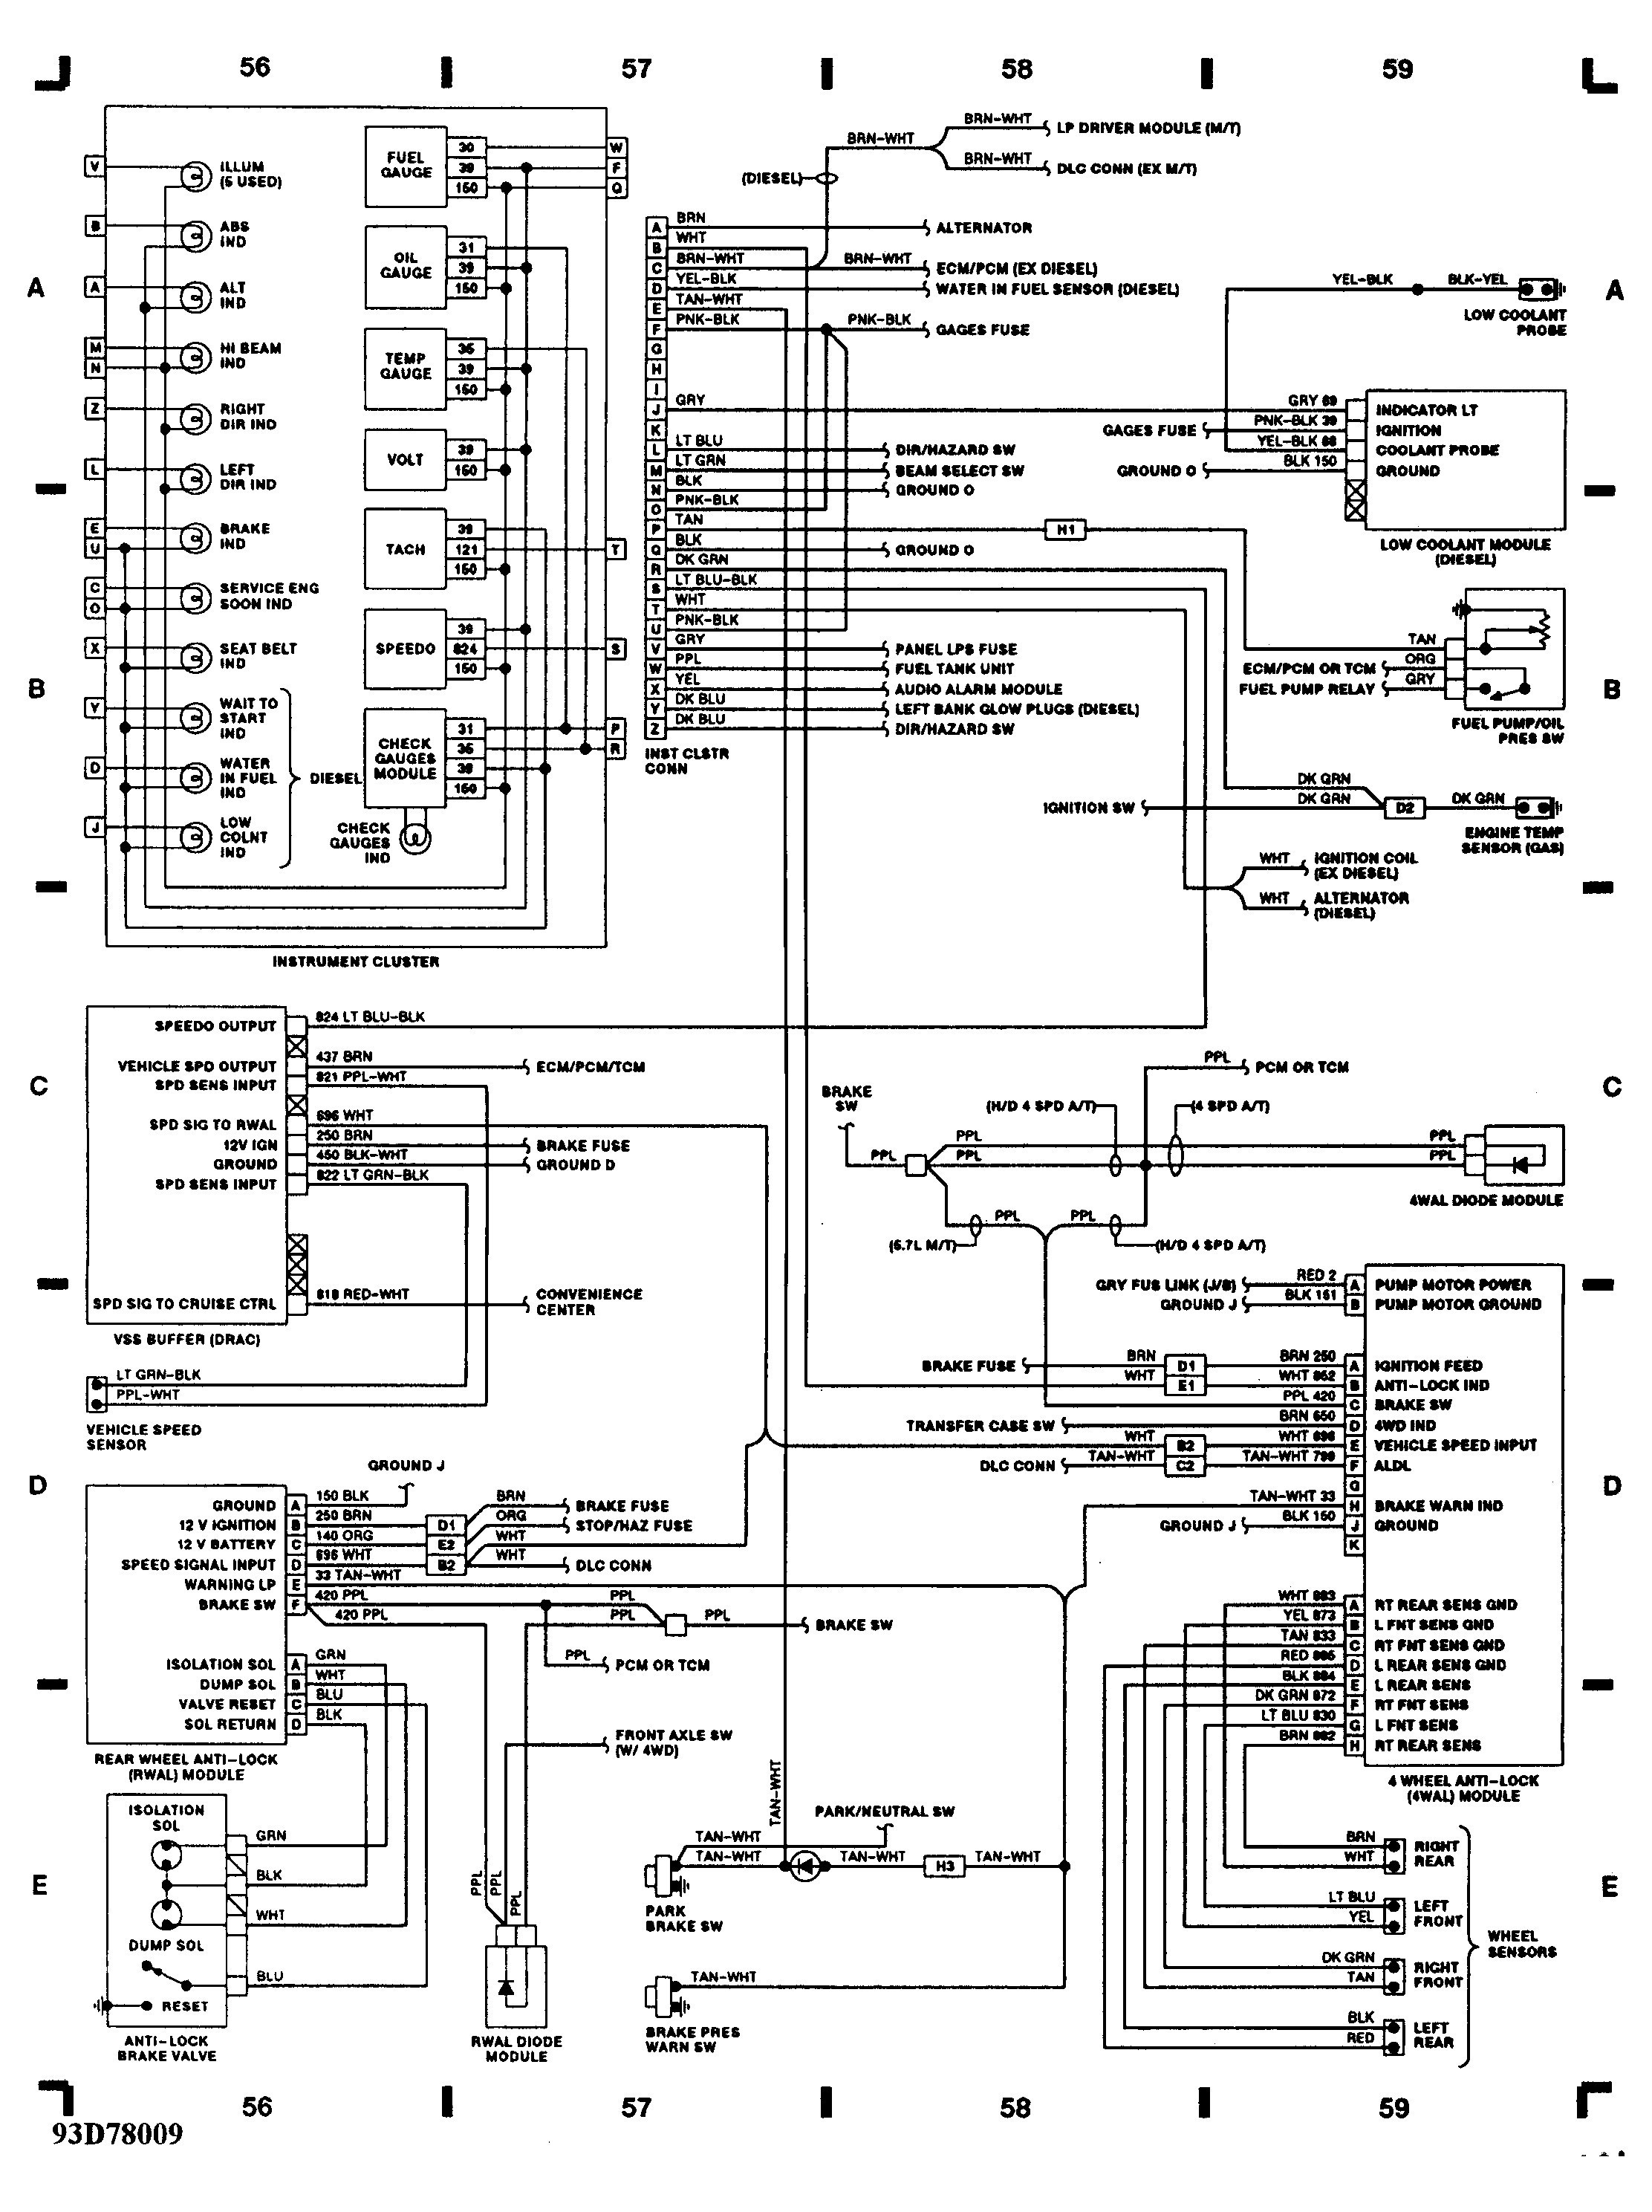 1997 vw jetta engine wiring diagram  u2022 wiring diagram for free